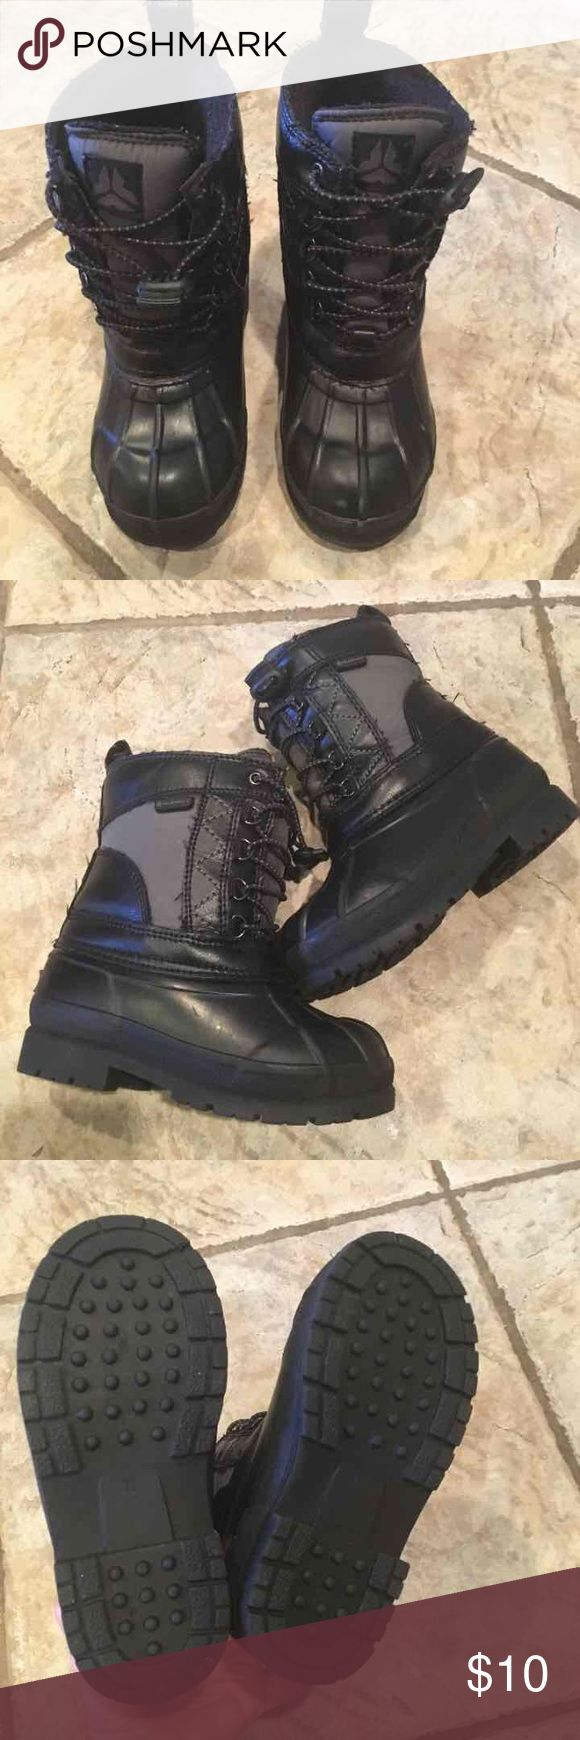 Boys size 11 old navy winter boots Boys size 11 old navy winter boots Black Weather proof Comfortable & easy to put on & take off Only worn a few times during winter break vacation since we live in Florida :) Old Navy Shoes Boots